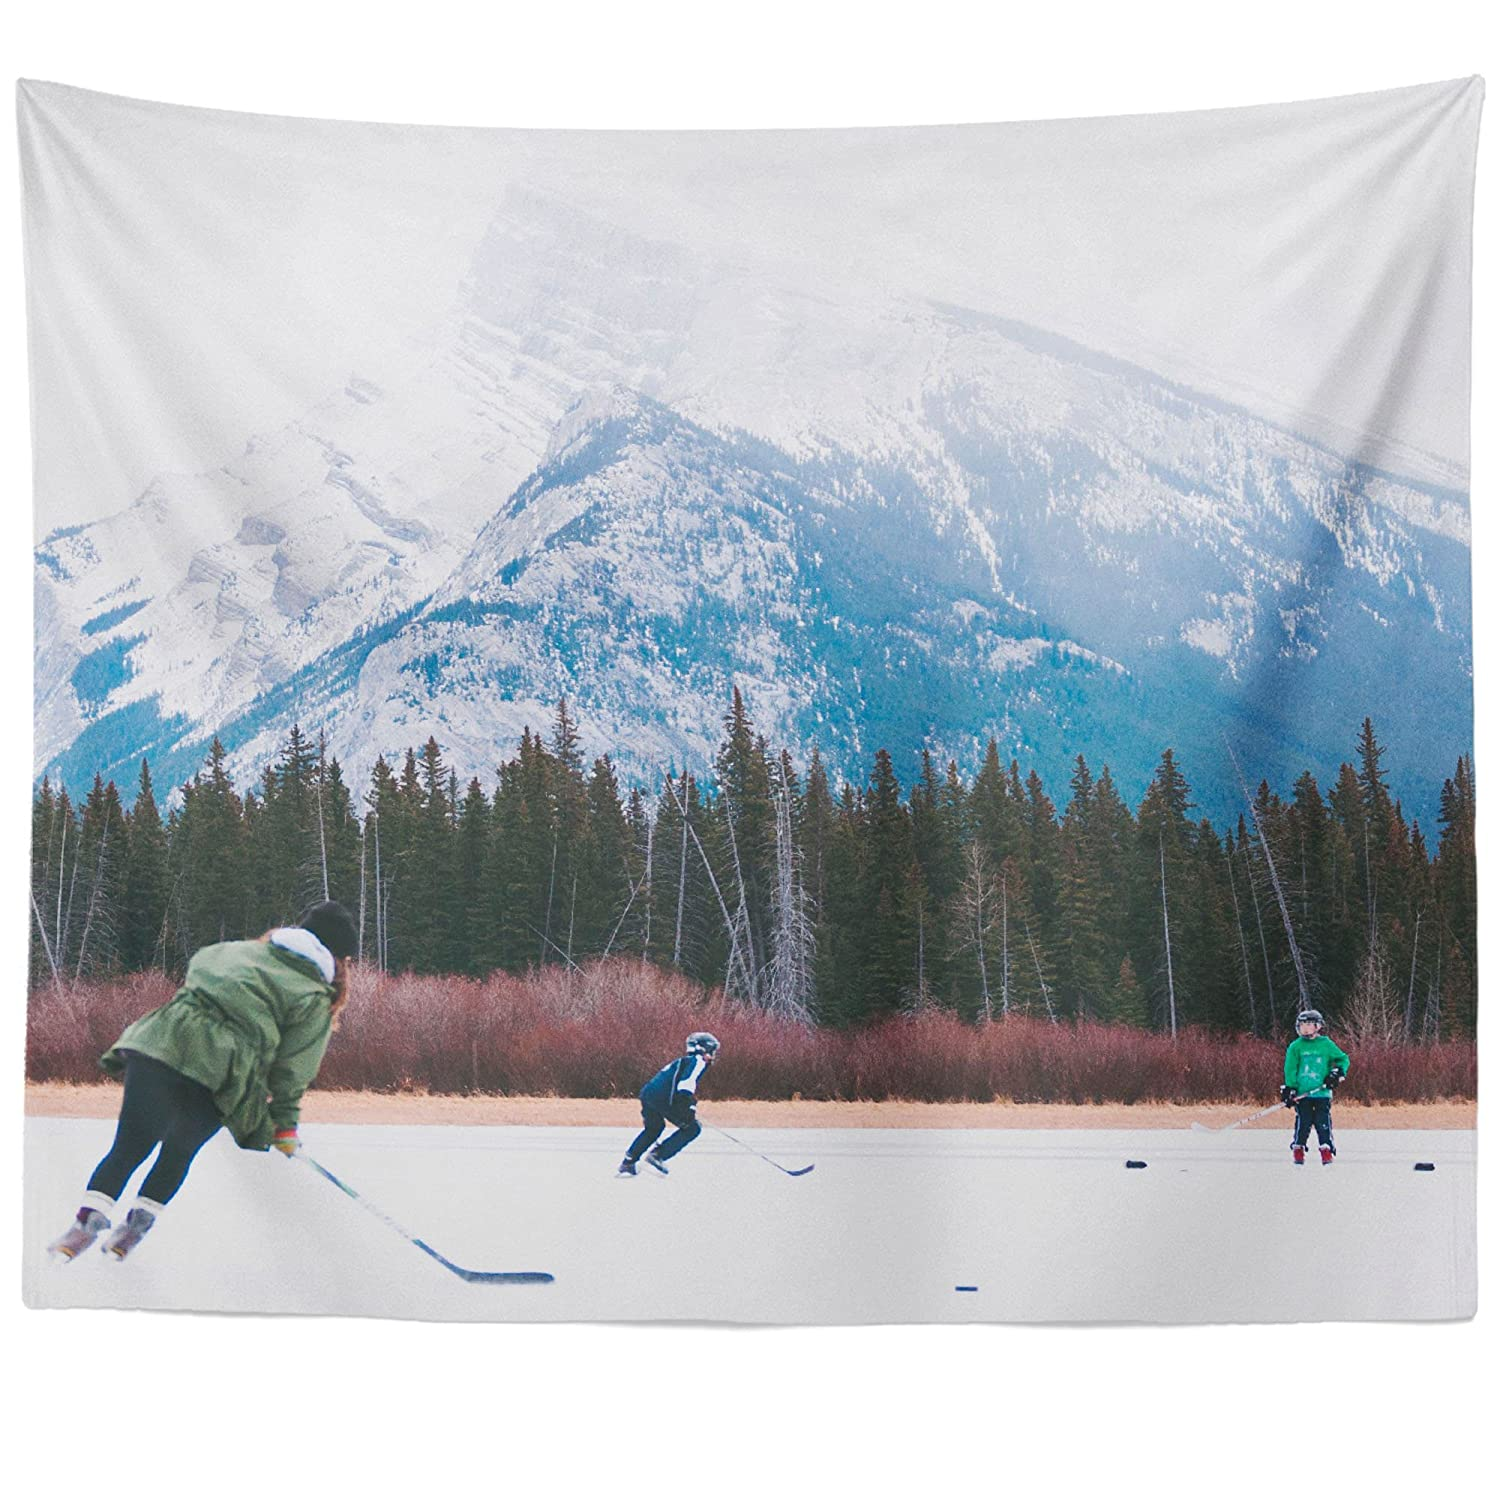 Westlake Art - Wall Hanging Tapestry - Ice Hockey - Photography Home Decor Living Room - 51x60in